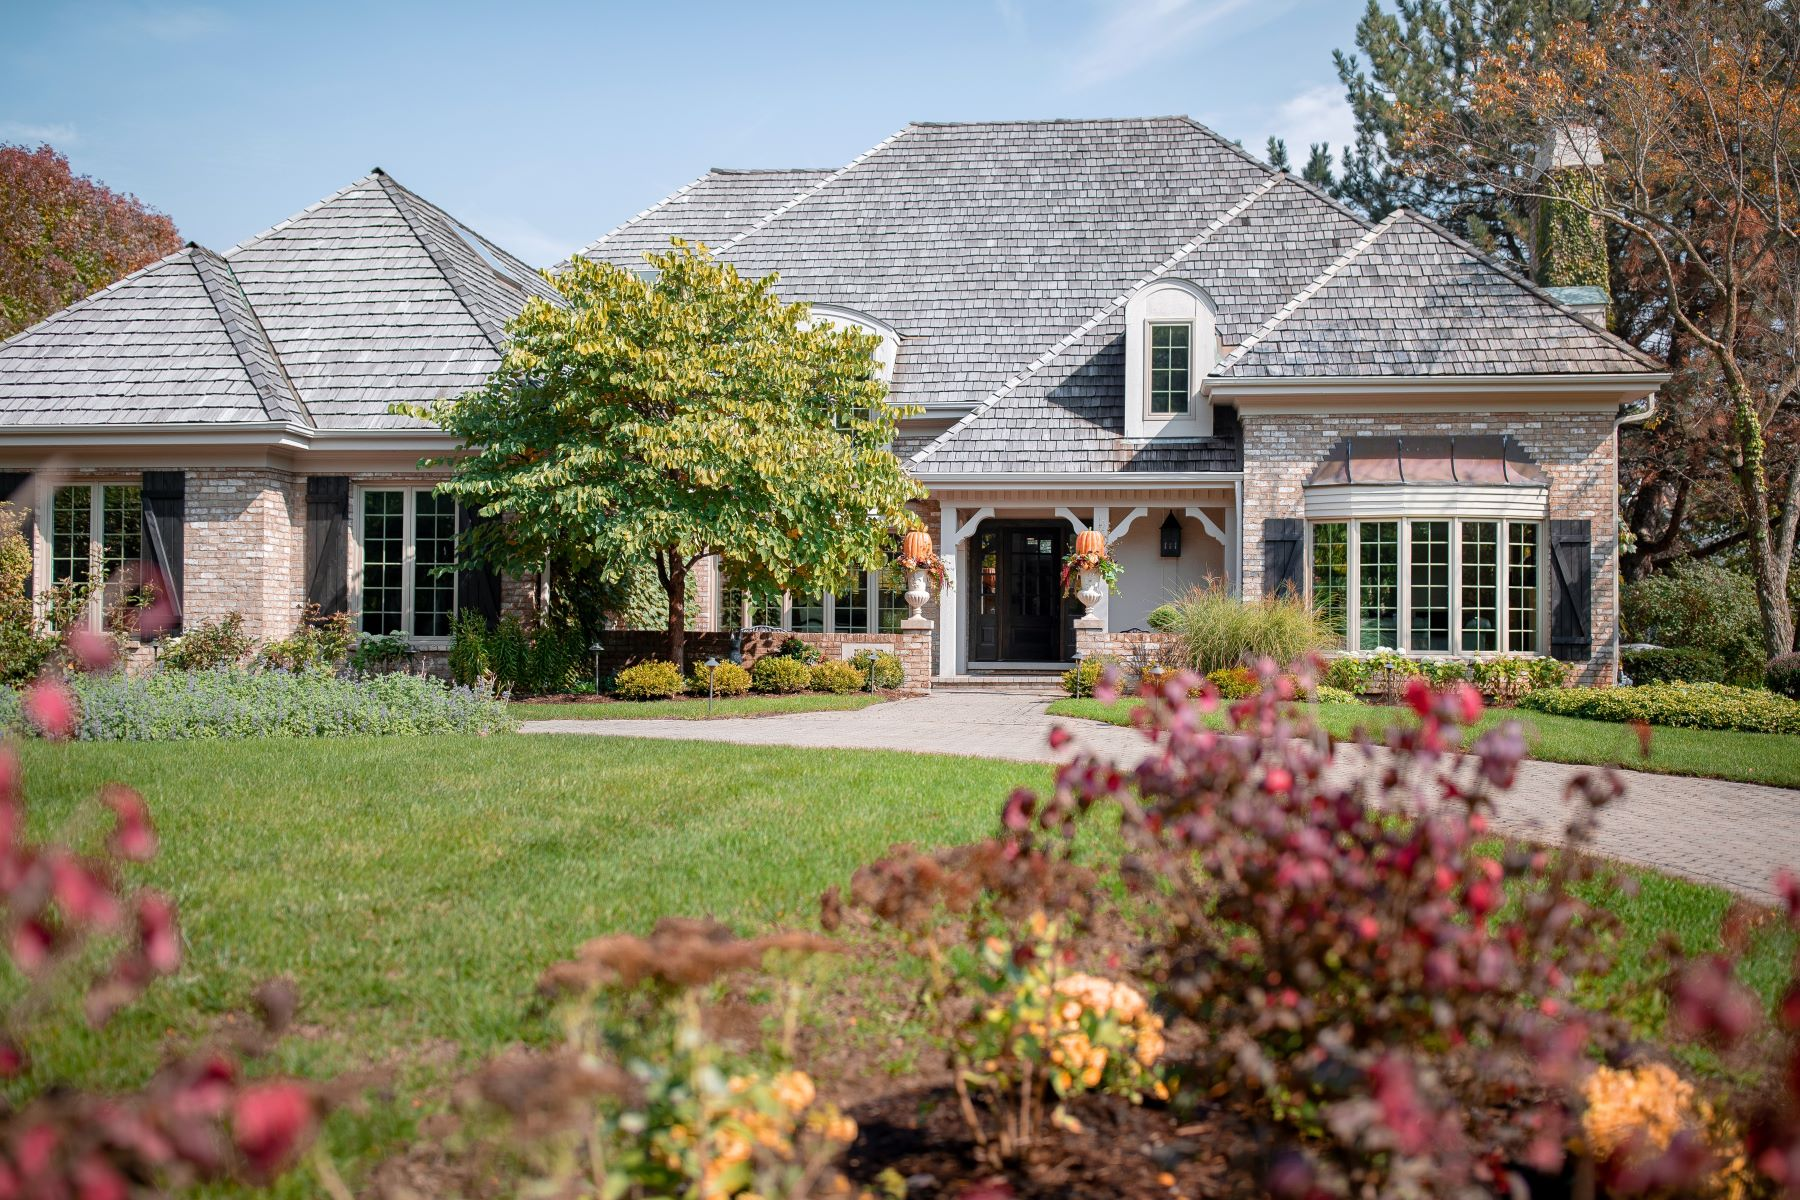 Single Family Home for Sale at Finest Of Everything 527 Princeton Road Hinsdale, Illinois 60521 United States